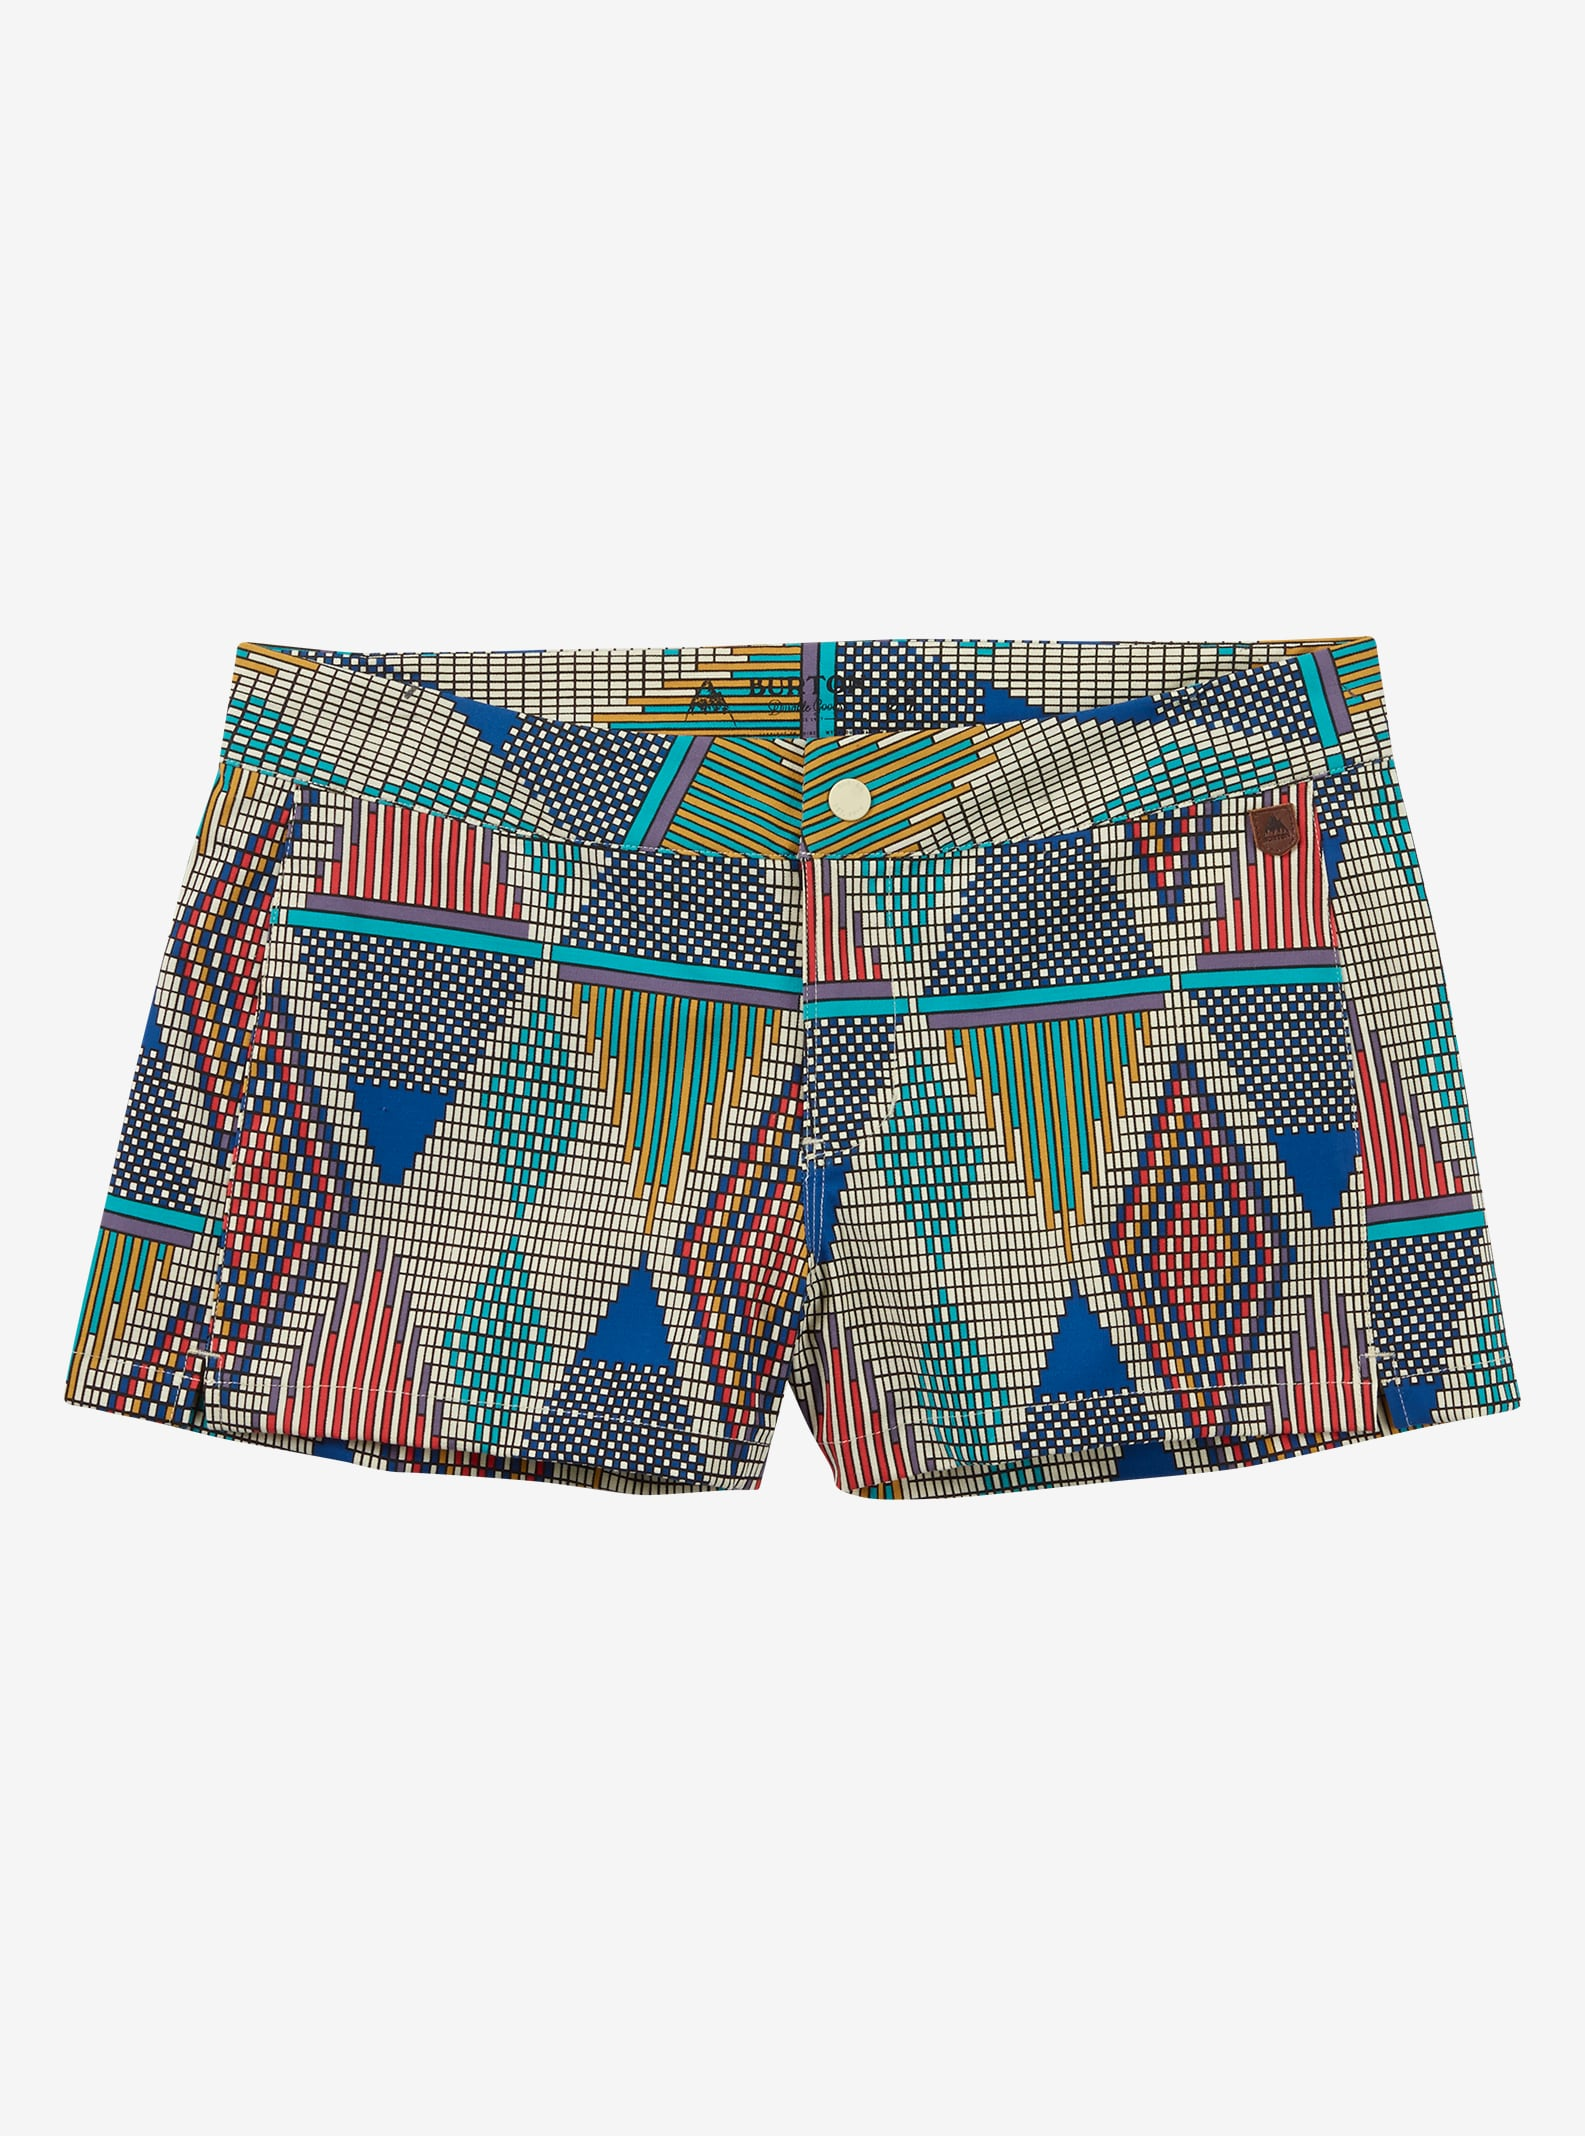 Burton Shearwater Boardshort shown in Everglade De Geo